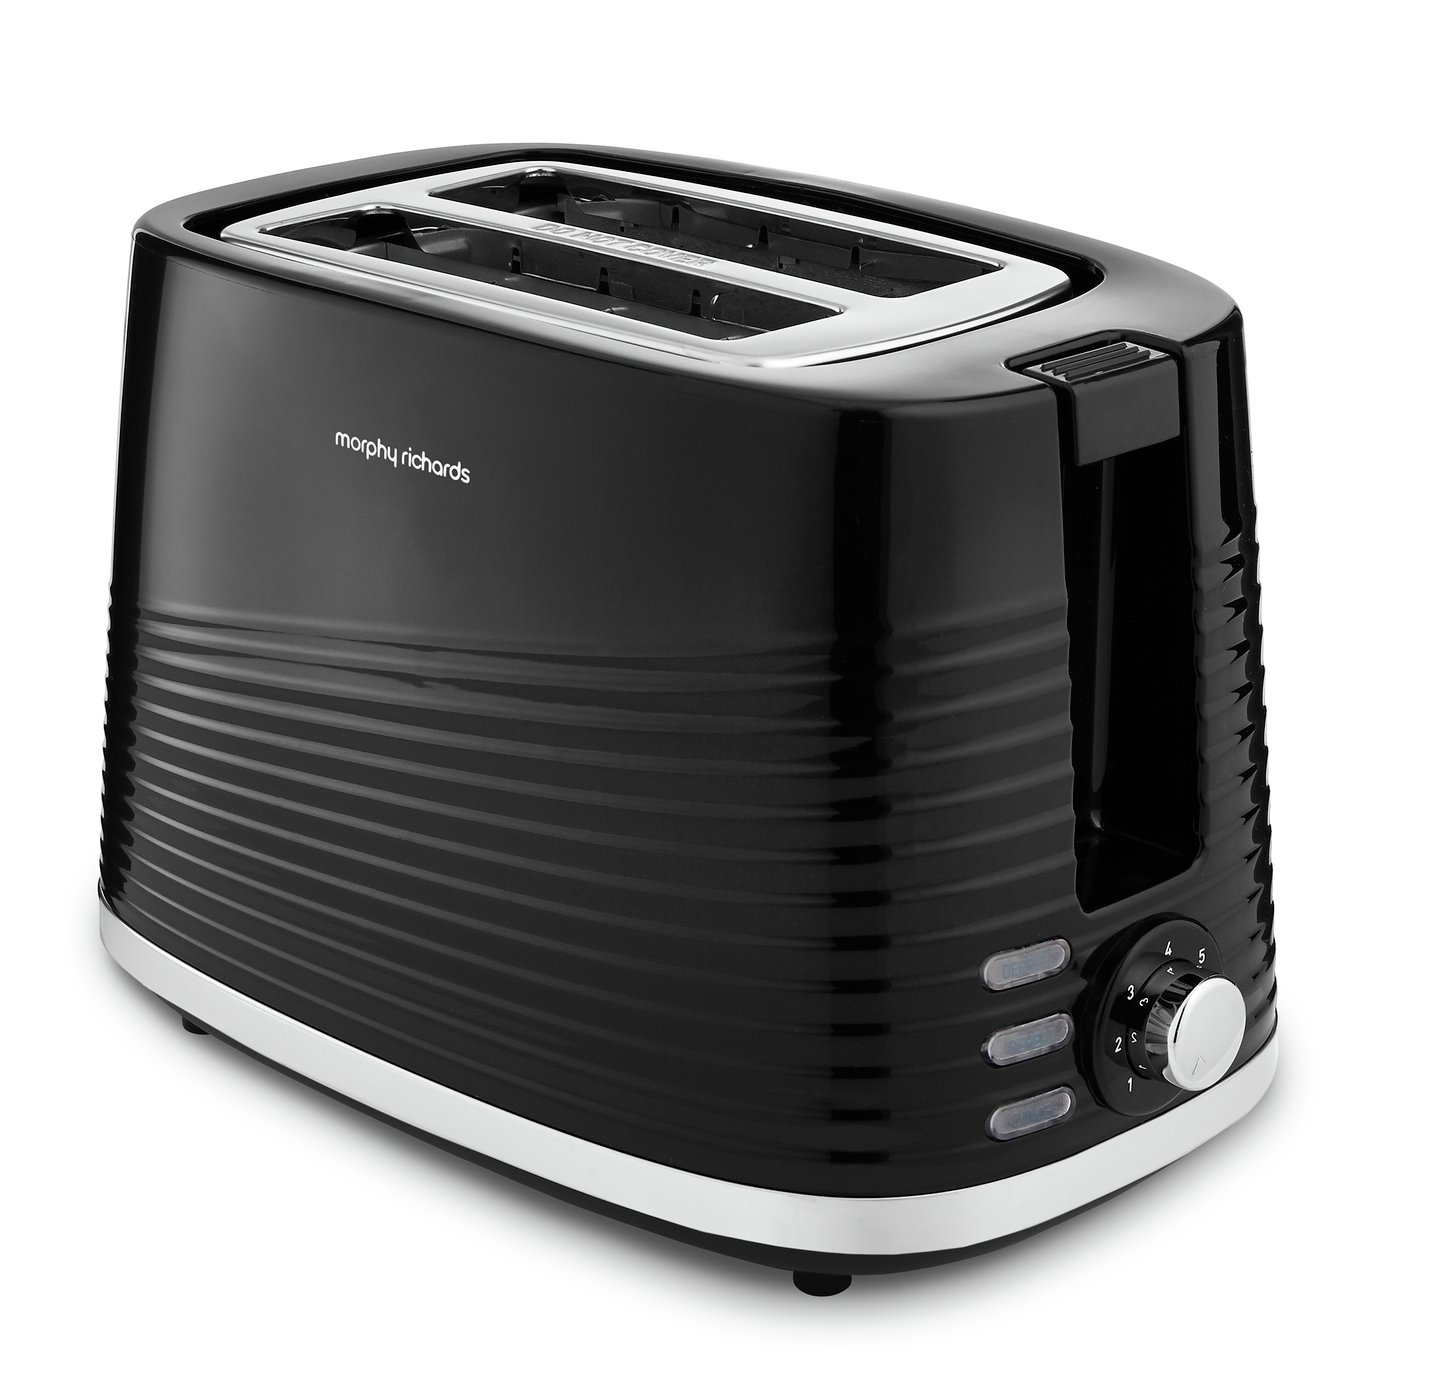 Morphy Richards 220026 Dune 2 Slice Toaster - Black